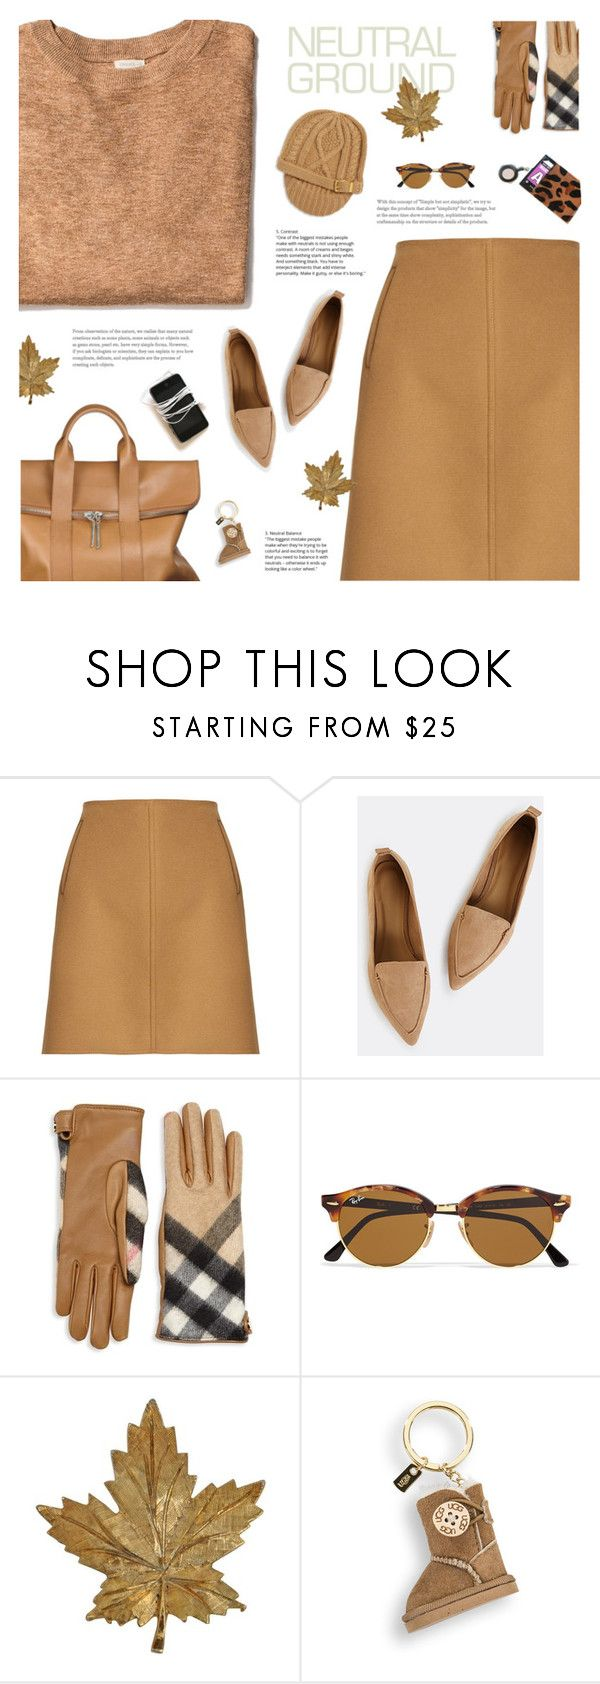 """""""#neutrals"""" by giulls1 ❤ liked on Polyvore featuring Tomas Maier, Burberry, Ray-Ban, UGG, MICHAEL Michael Kors, skirt, Sweater, neutrals and camel"""